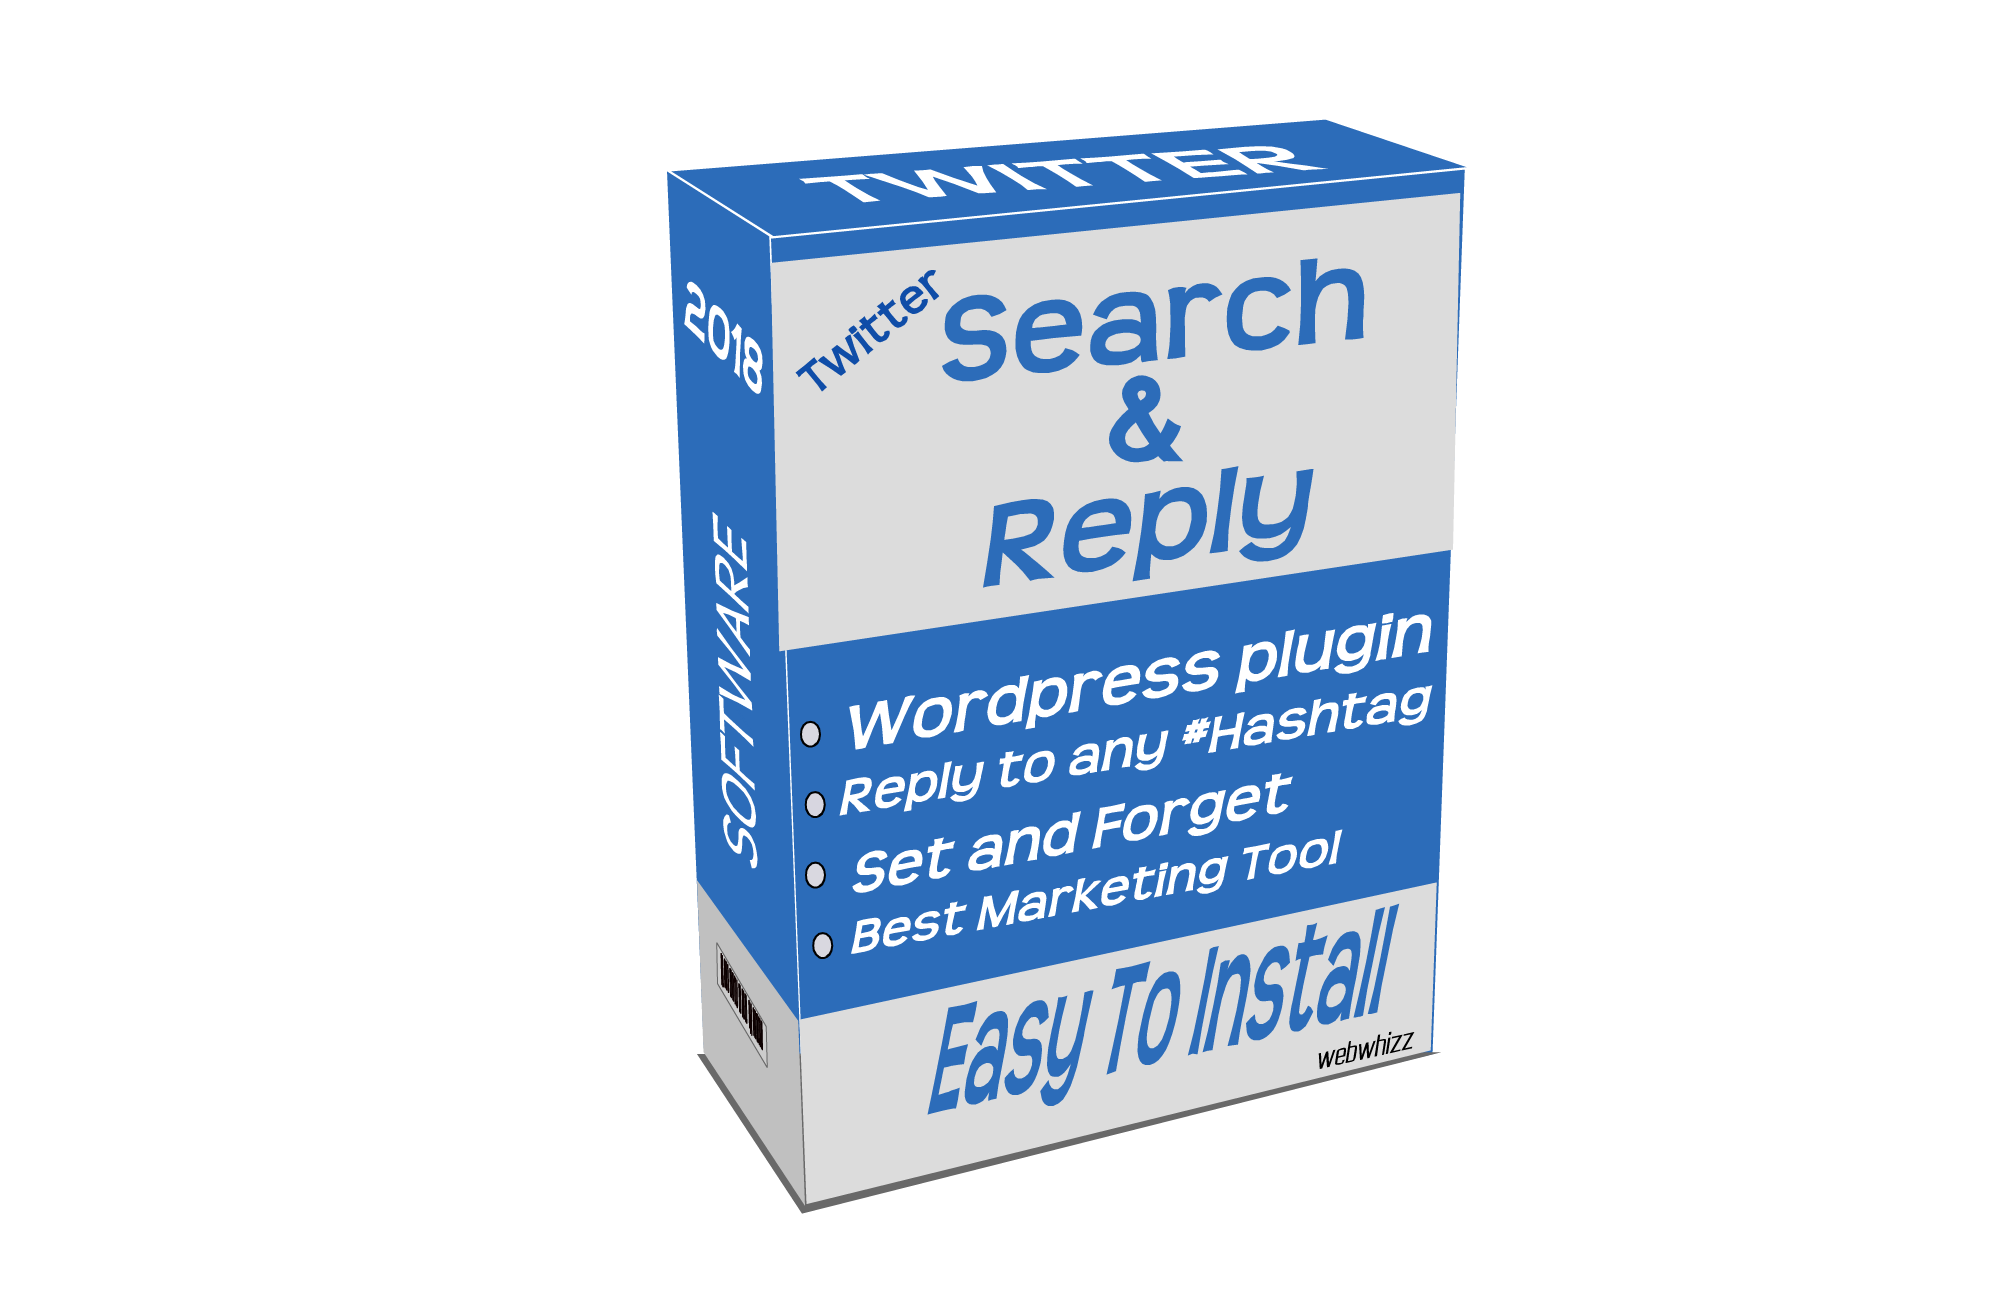 Twitter hashtag search and reply marketing Plugin